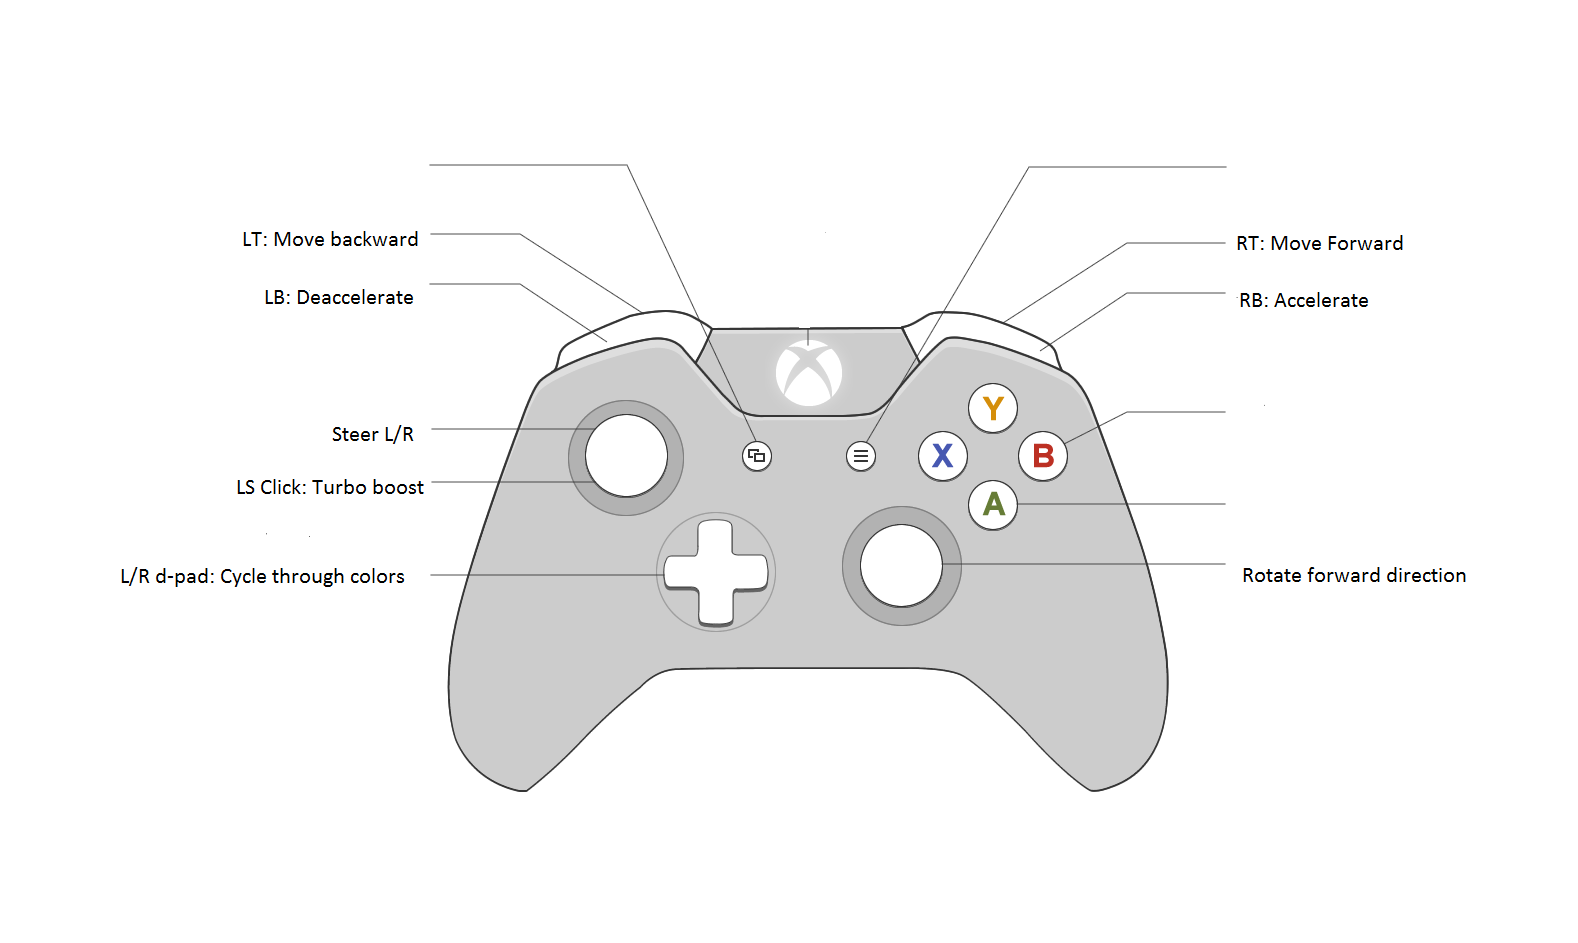 playstation controller diagram image collections diagram and rh nfrrun org ps controller diagram ps4 controller diagram